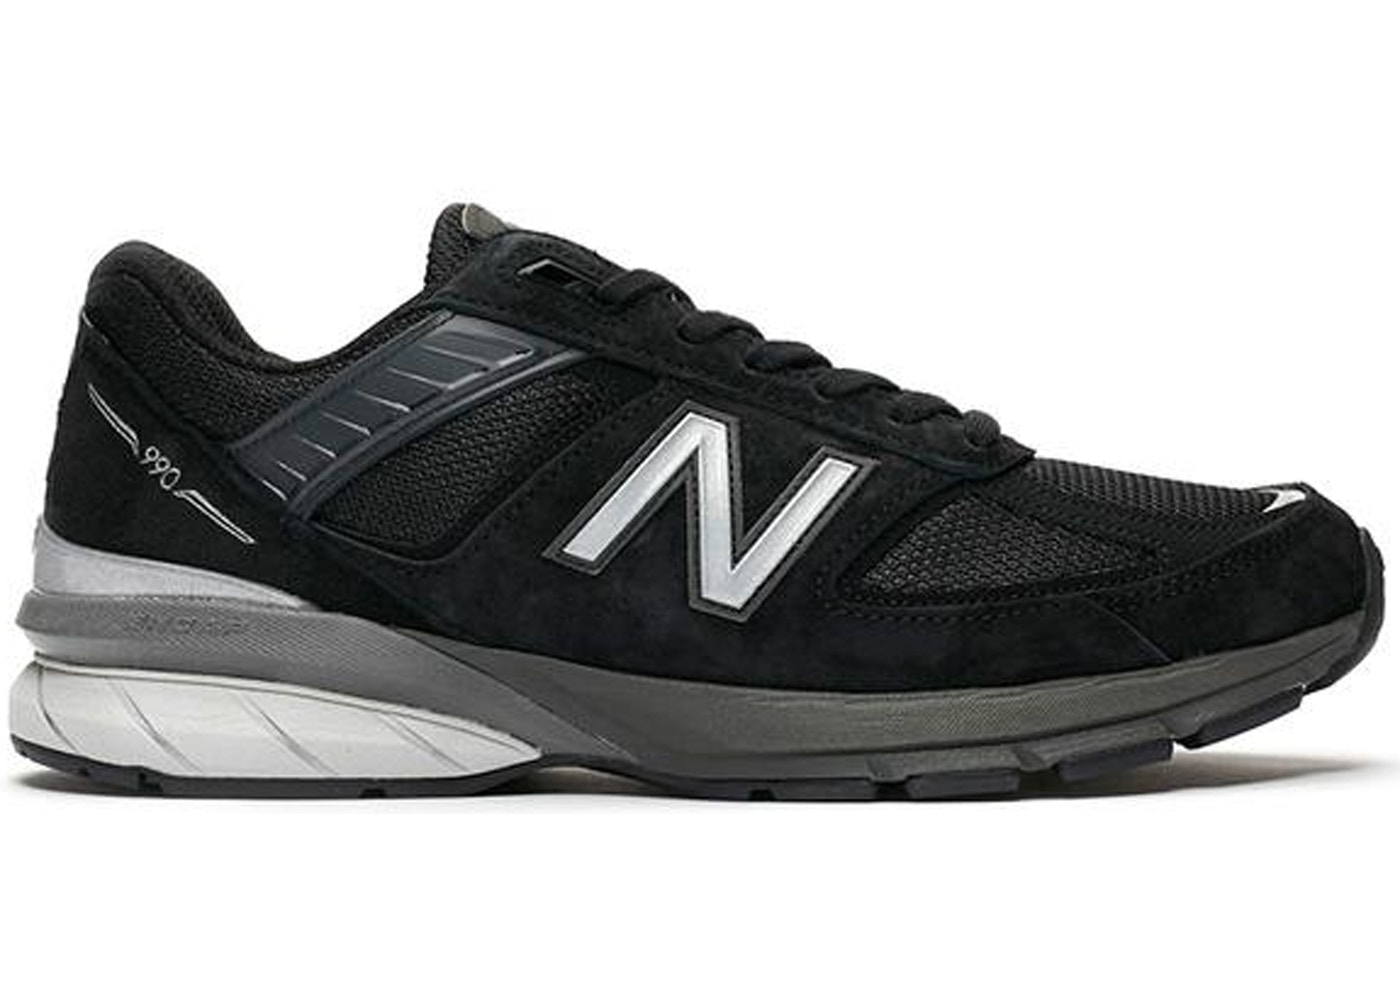 online retailer 12f1a 72d89 New Balance Size 15 Shoes - Release Date